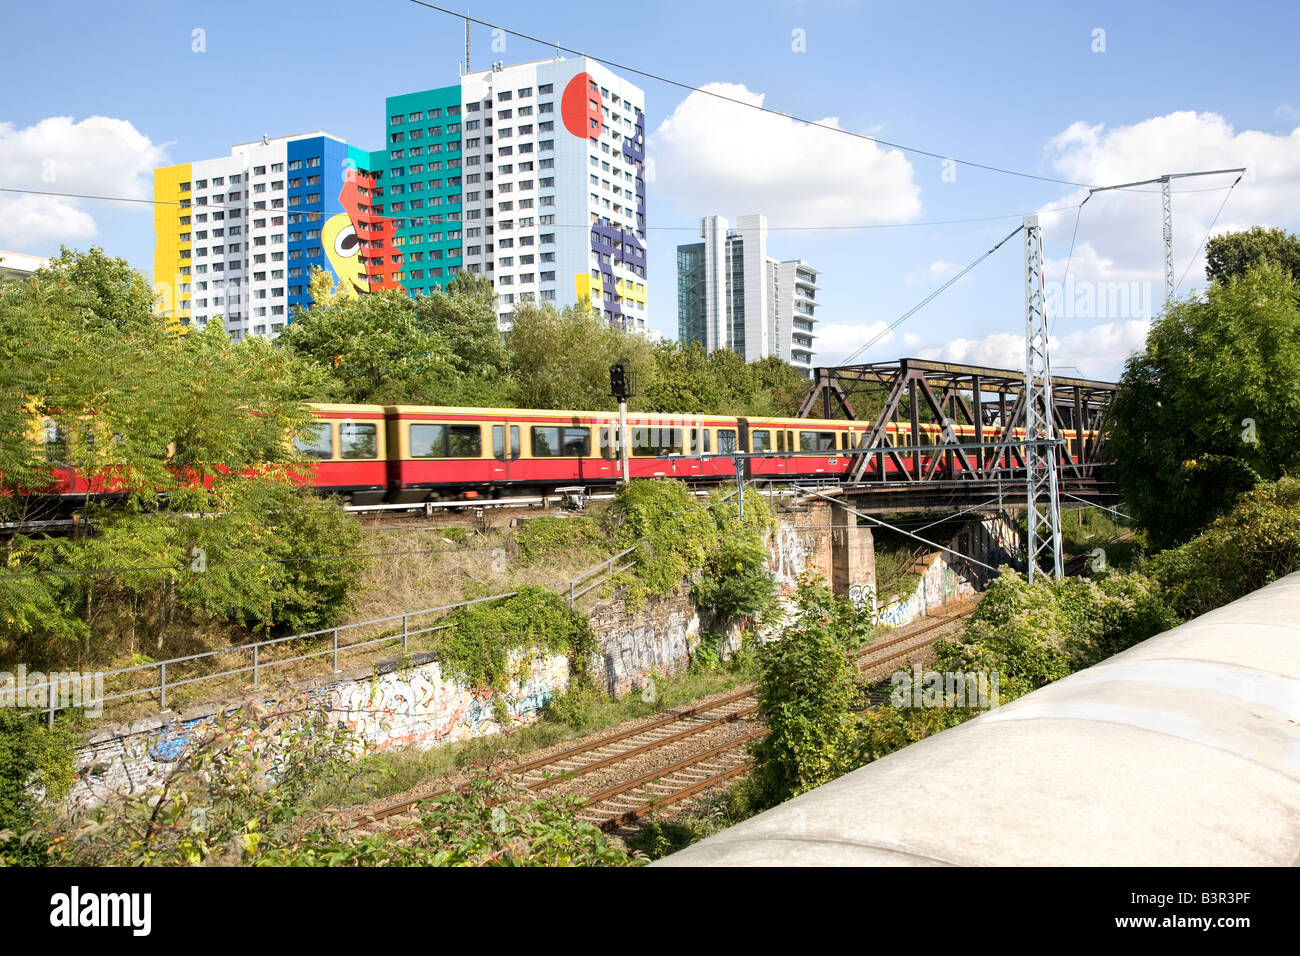 Railroad and tower block in Berlin Germany - Stock Image